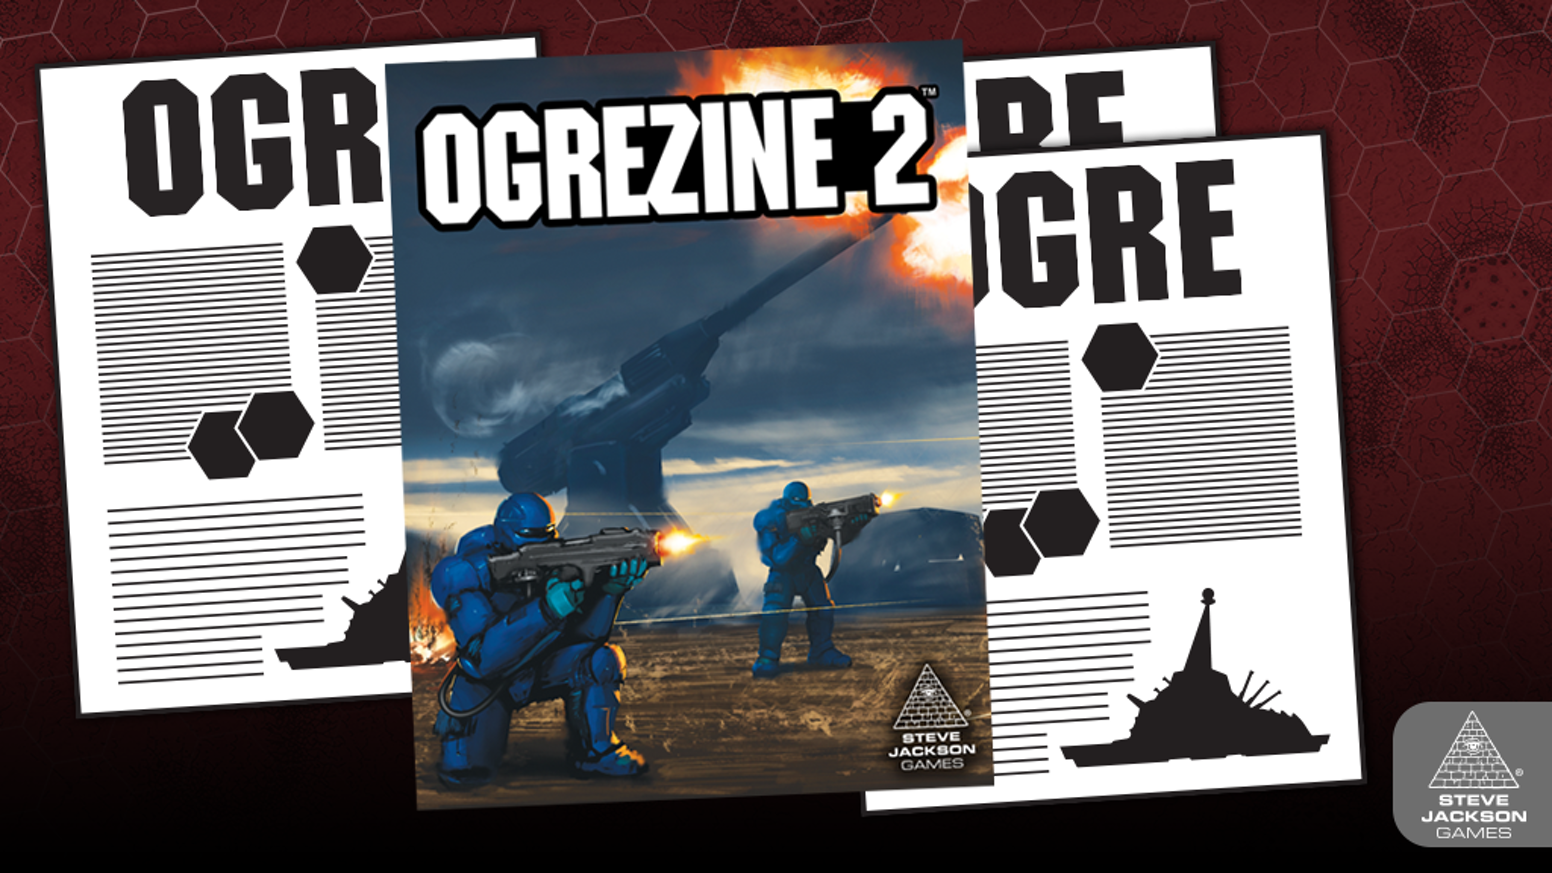 Ogrezine is back for a second collection of Ogre articles curated by line editor Drew Metzger.